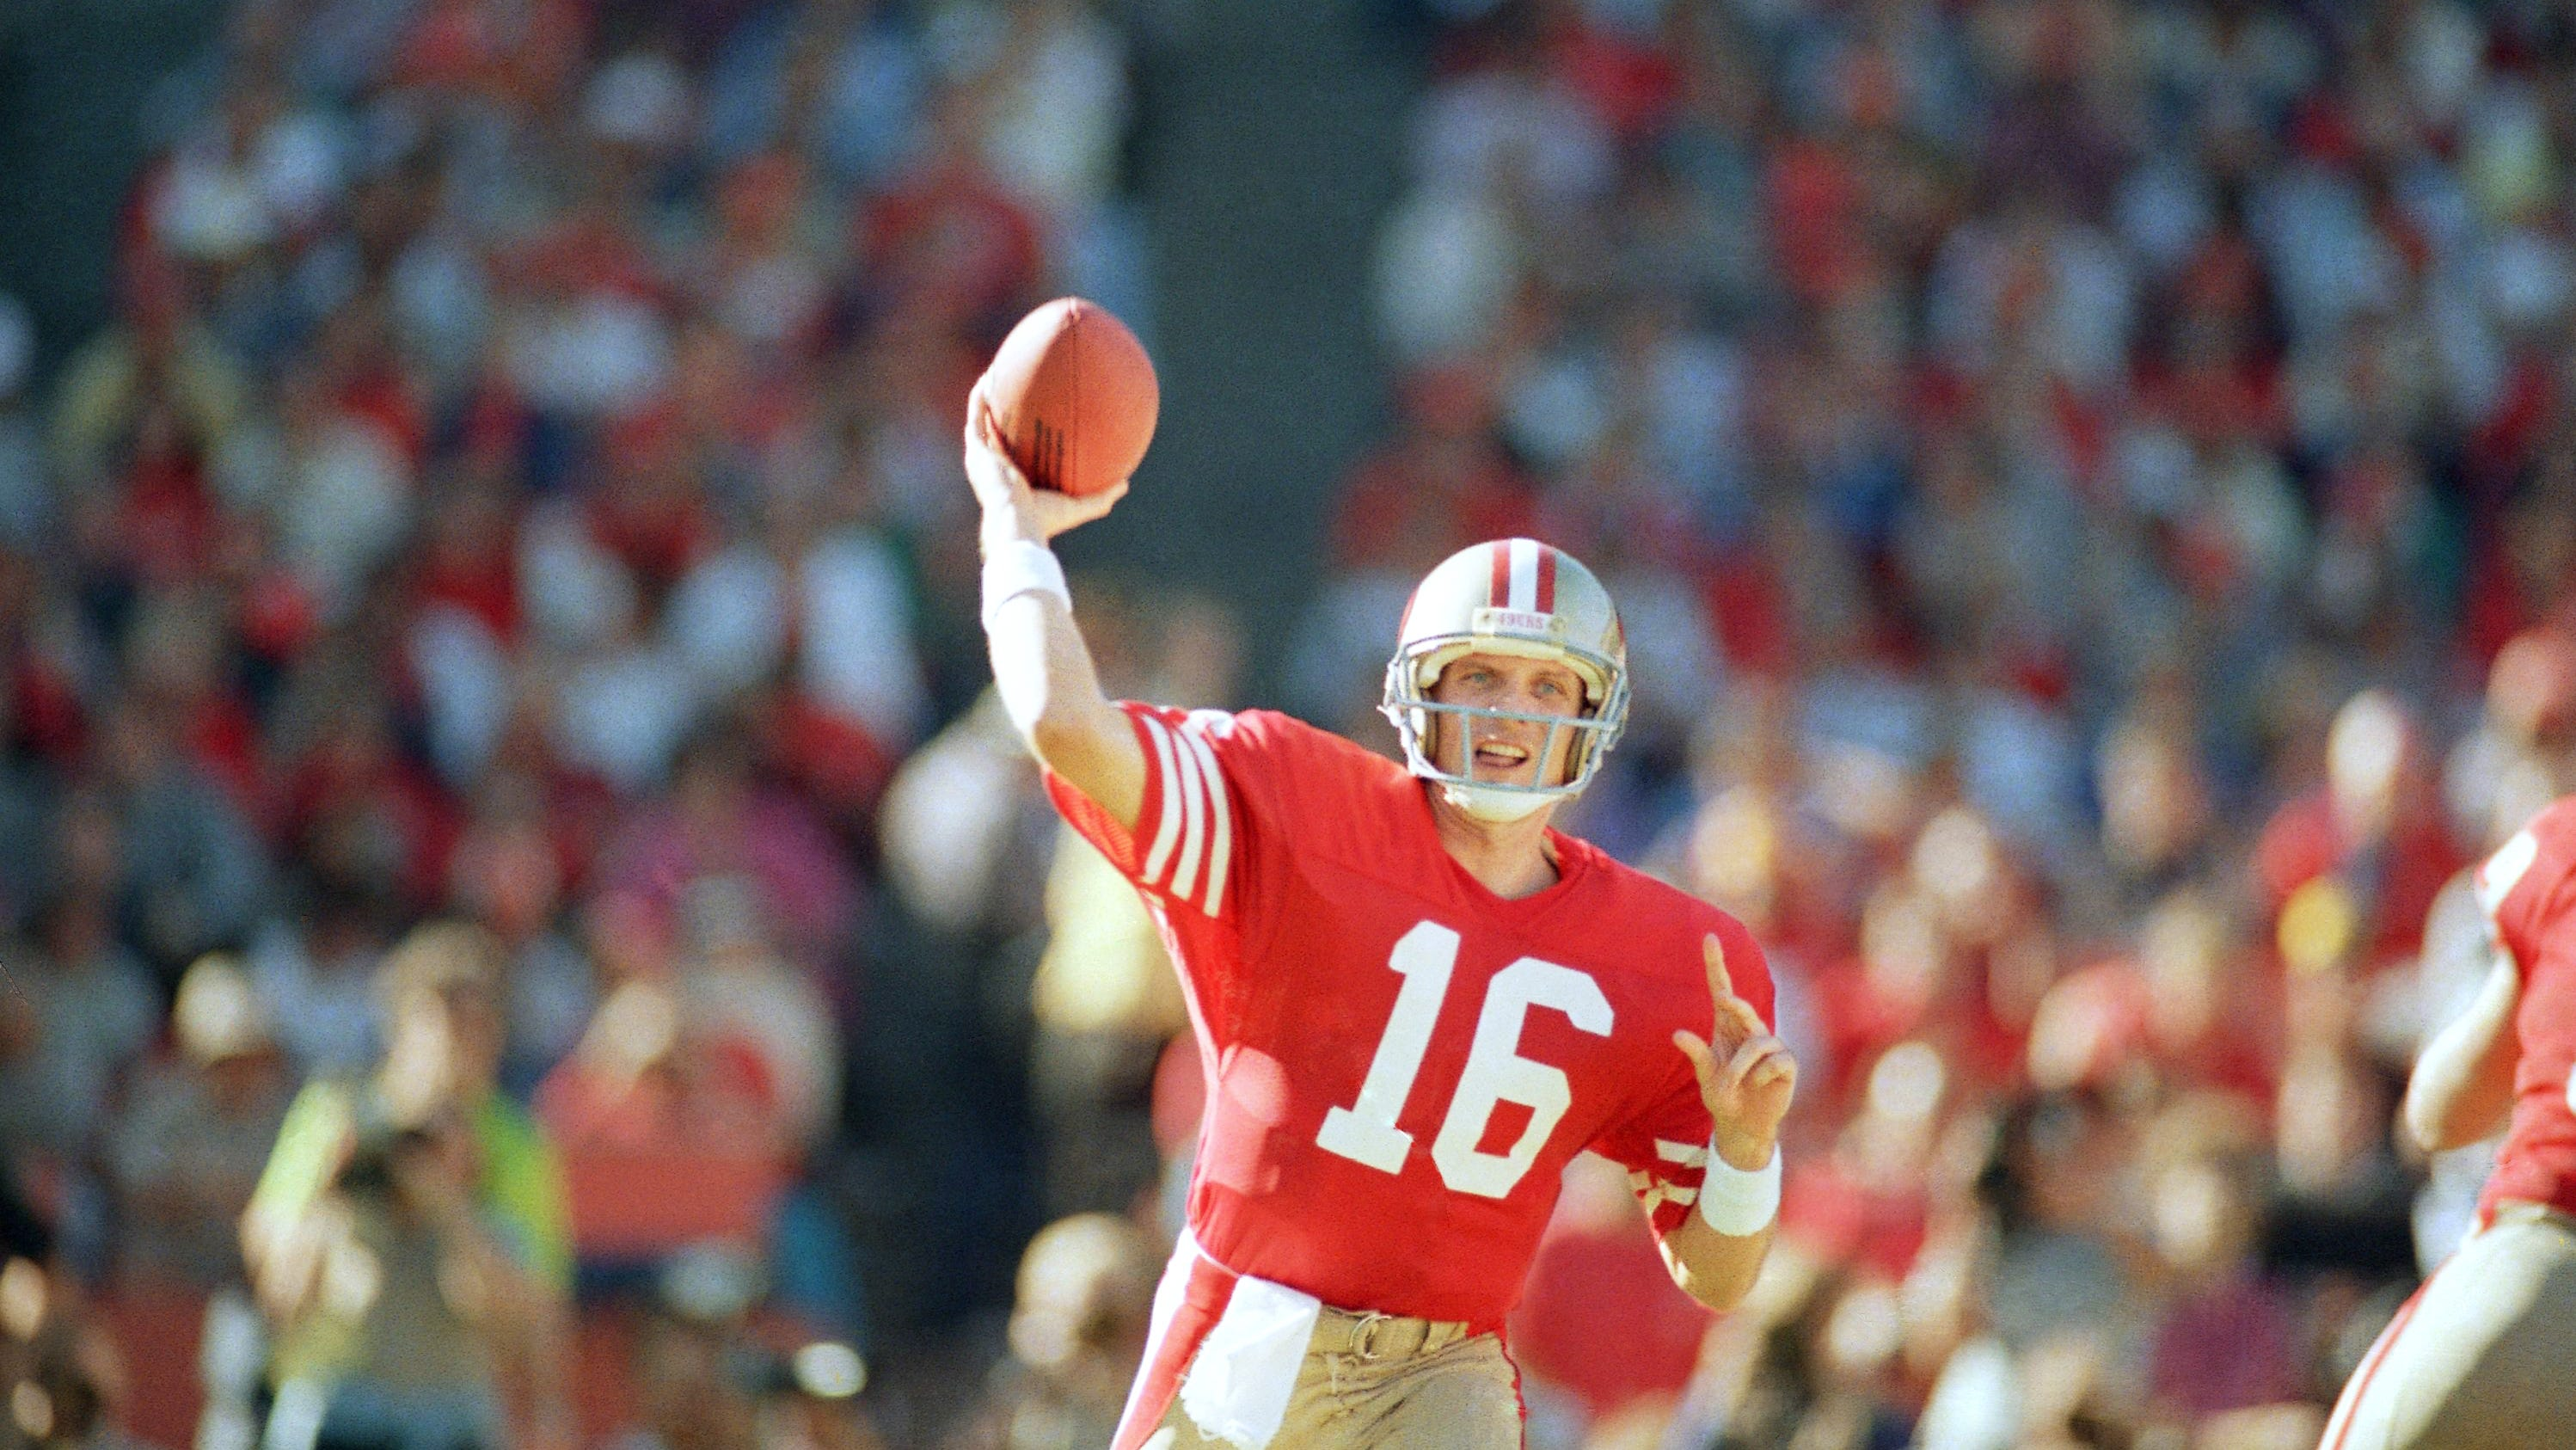 The 100 greatest NFL players of all time